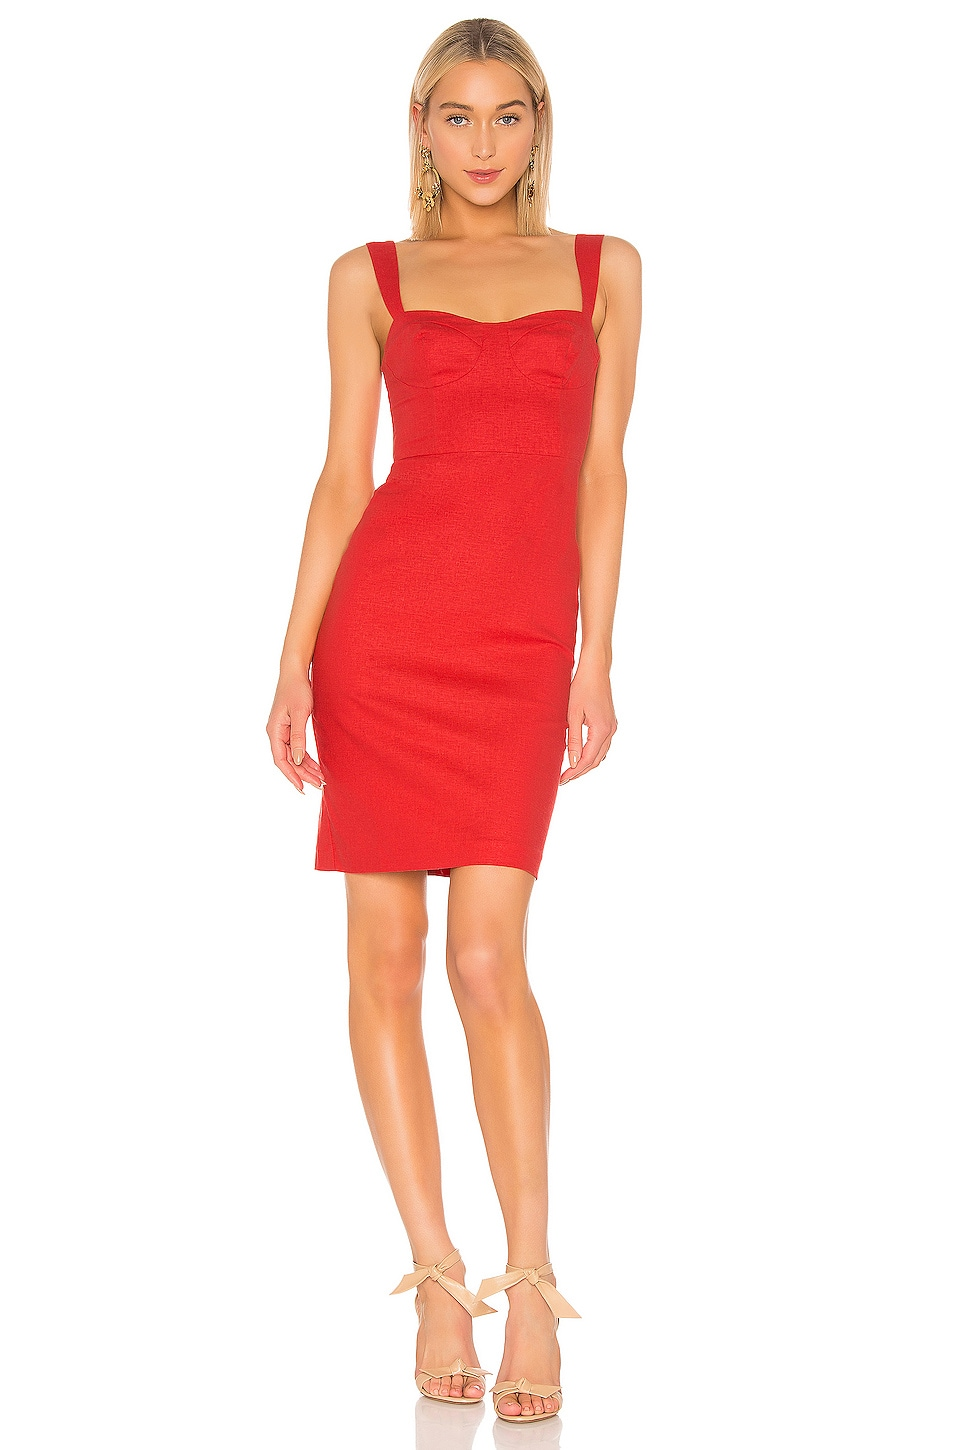 LPA Dahna Dress in Red